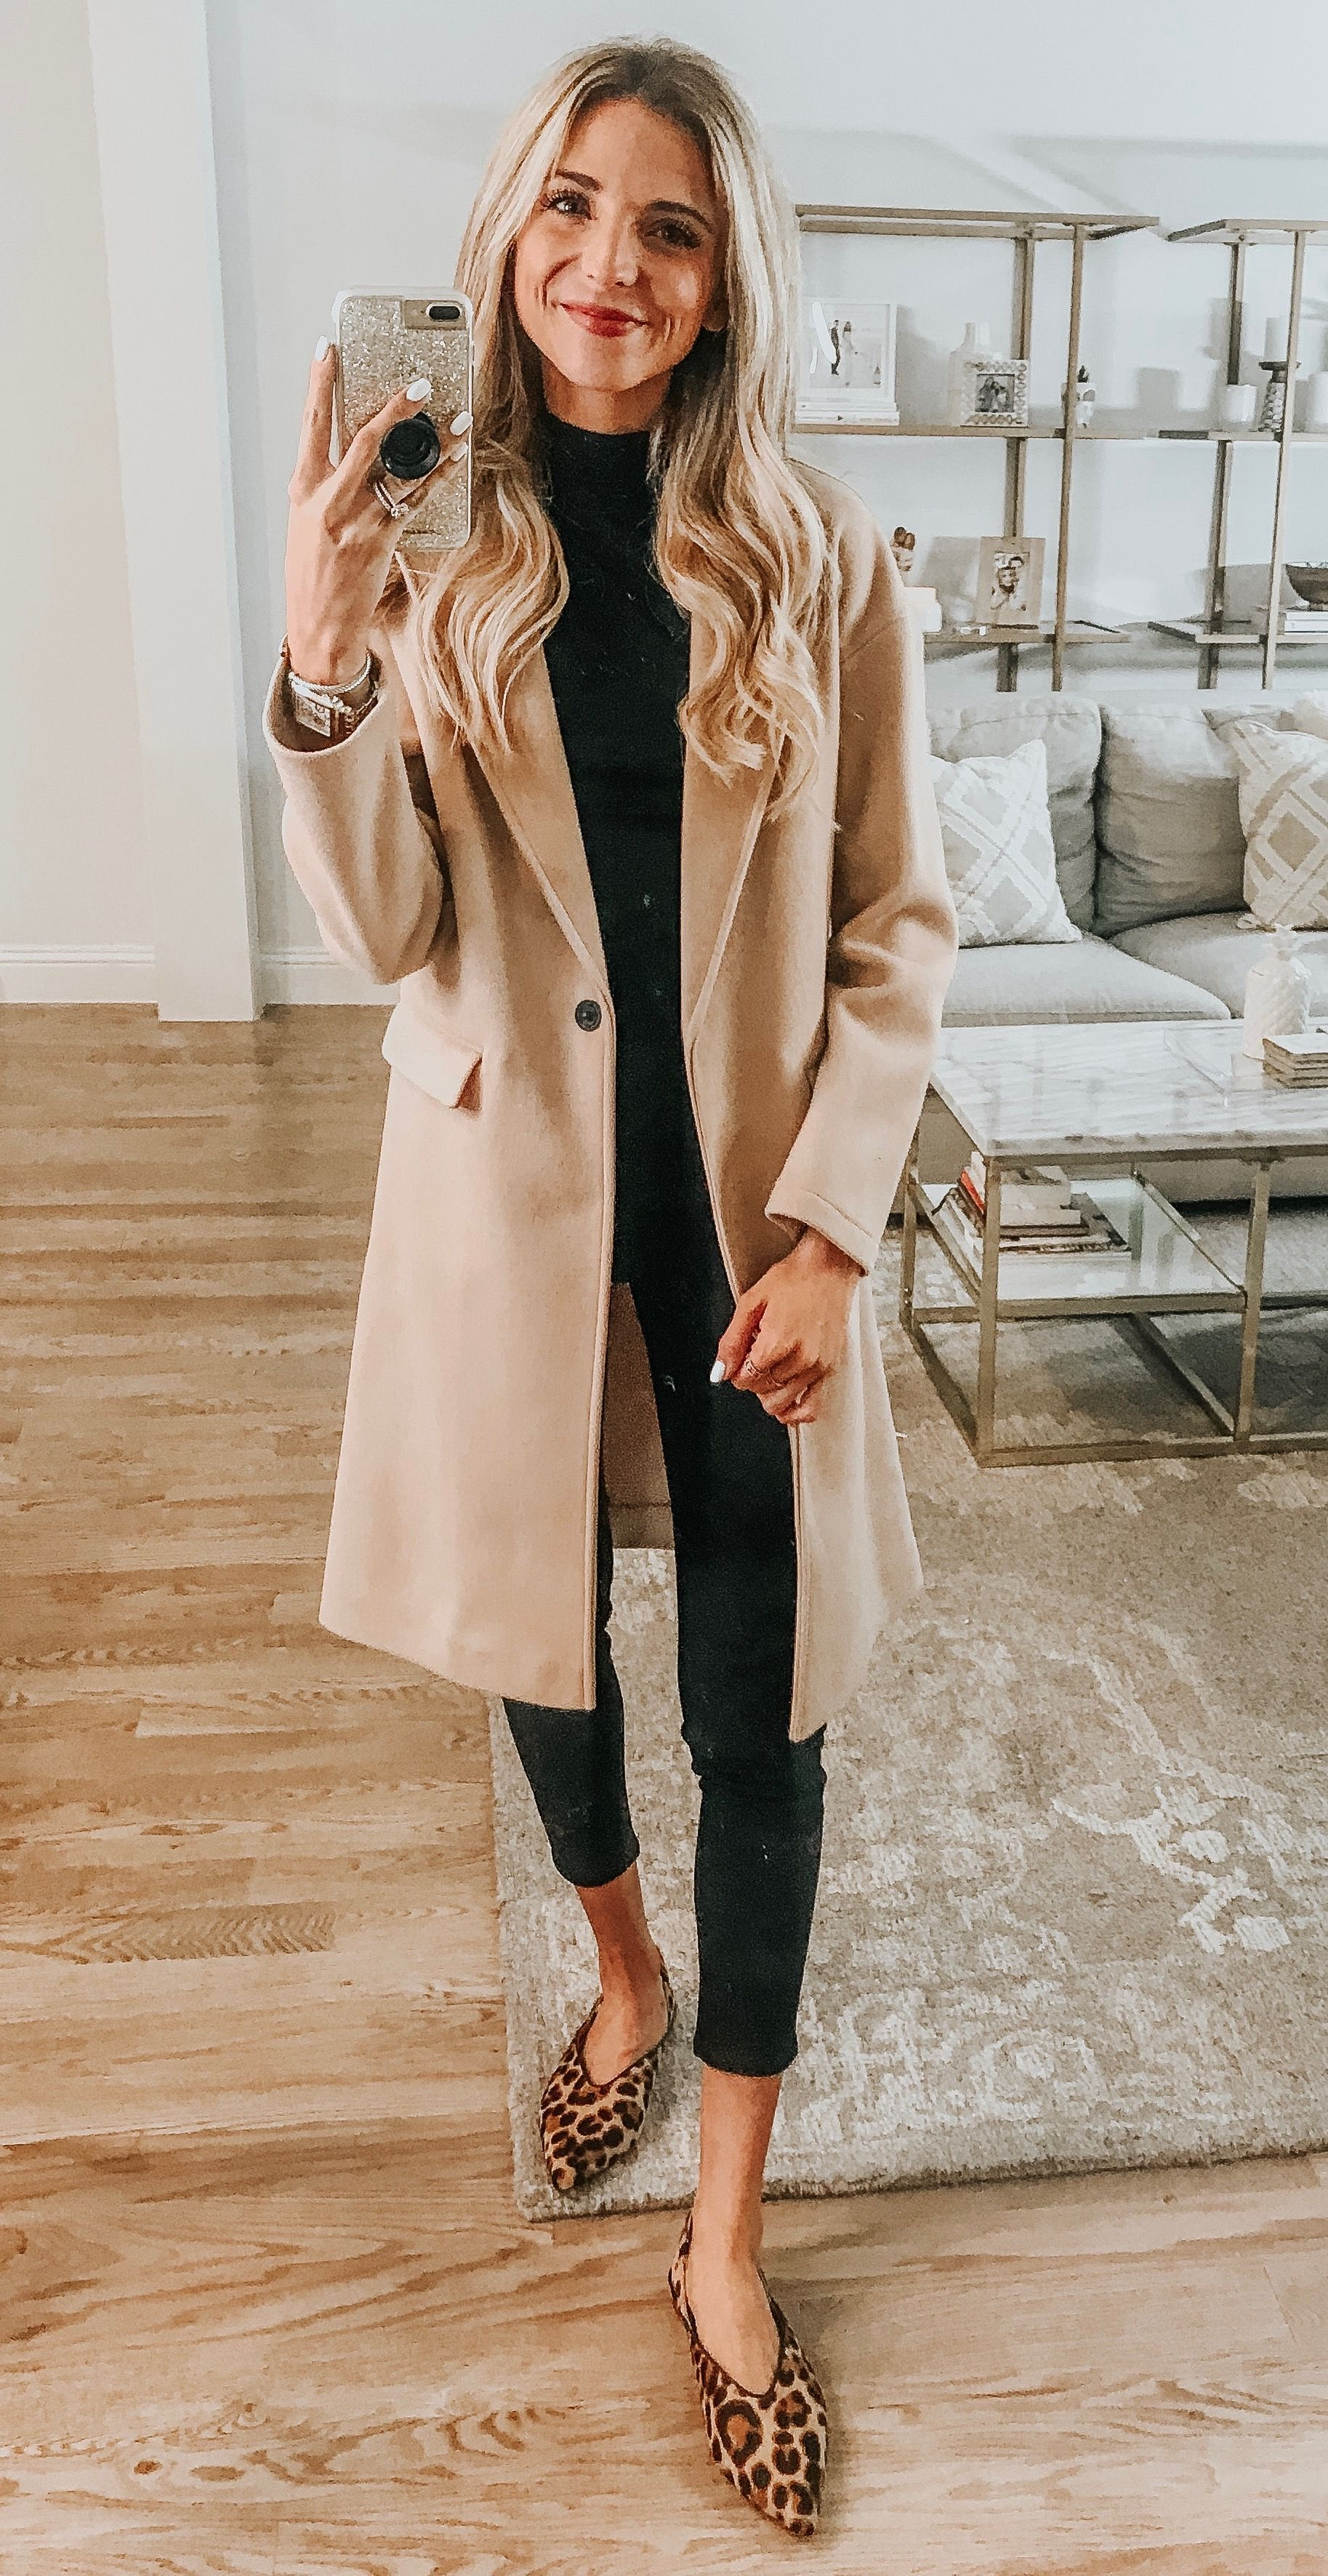 Trench coat in fall and winter Minimalistic Outfit